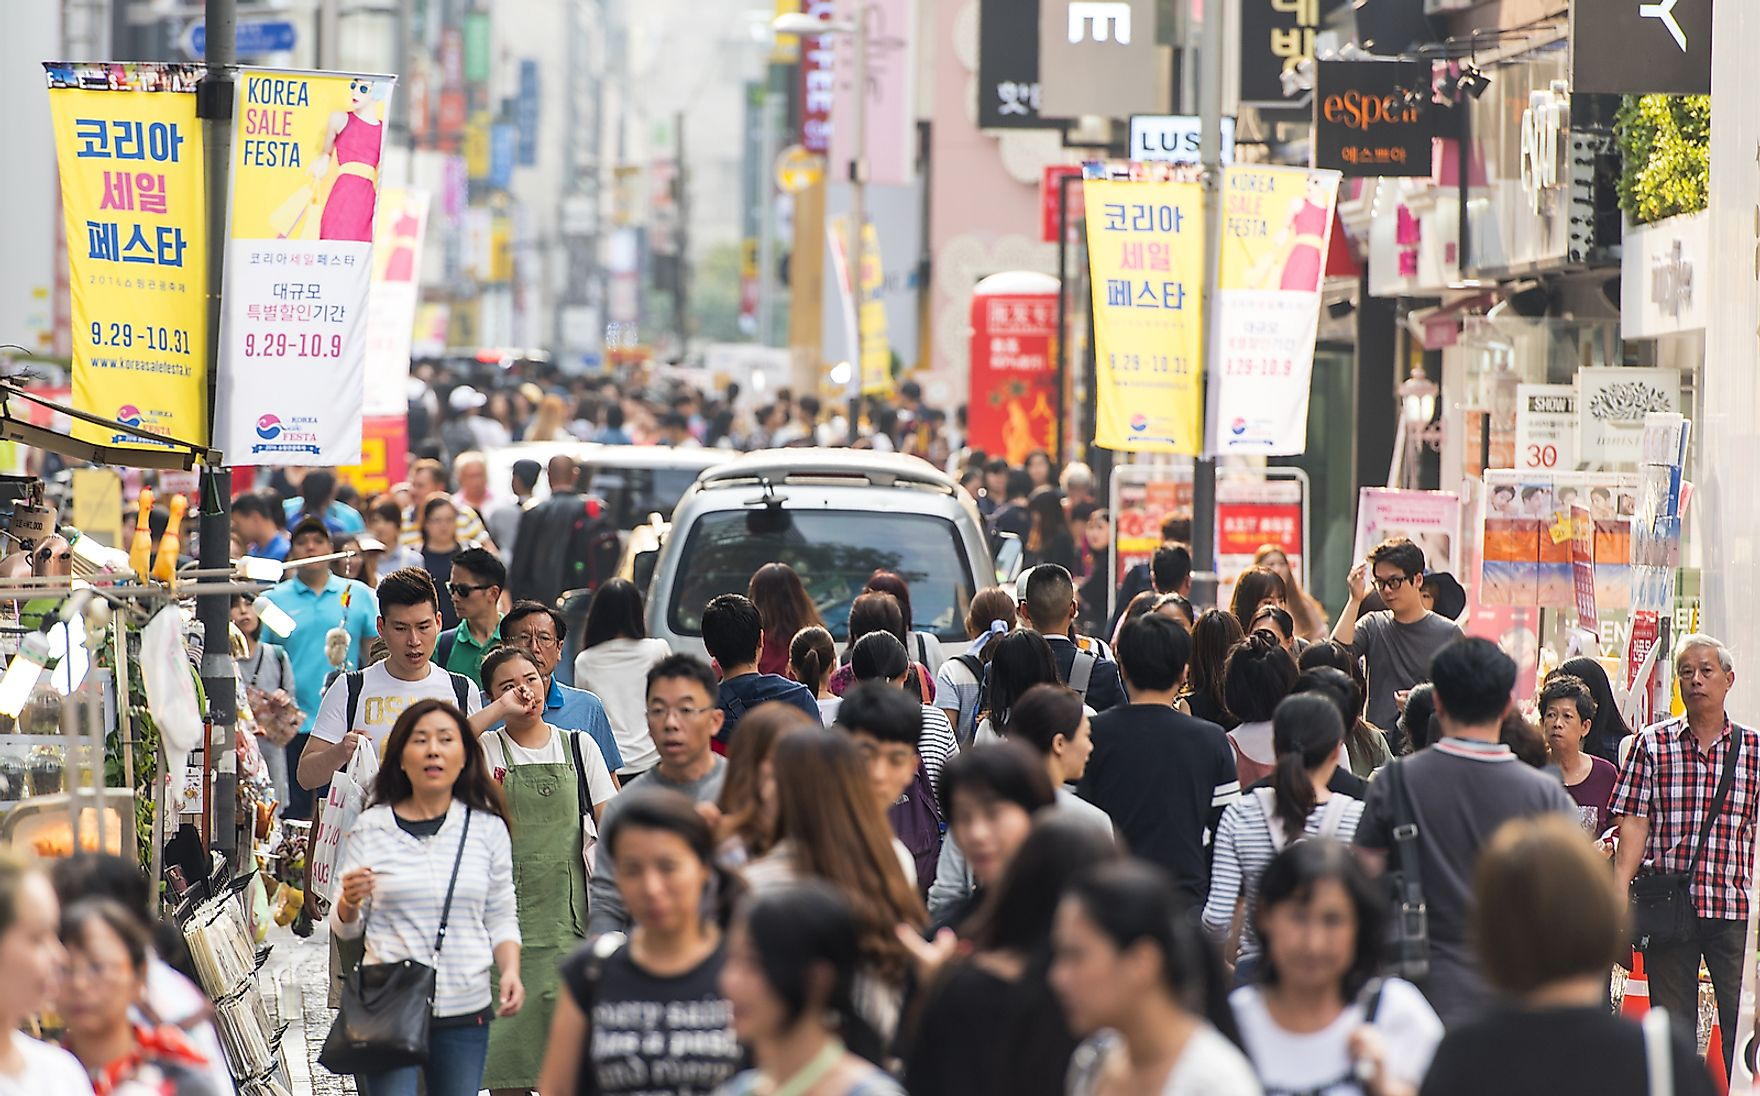 Young people walk the streets of Seoul, South Korea. Savvapanf Photo / Shutterstock.com.